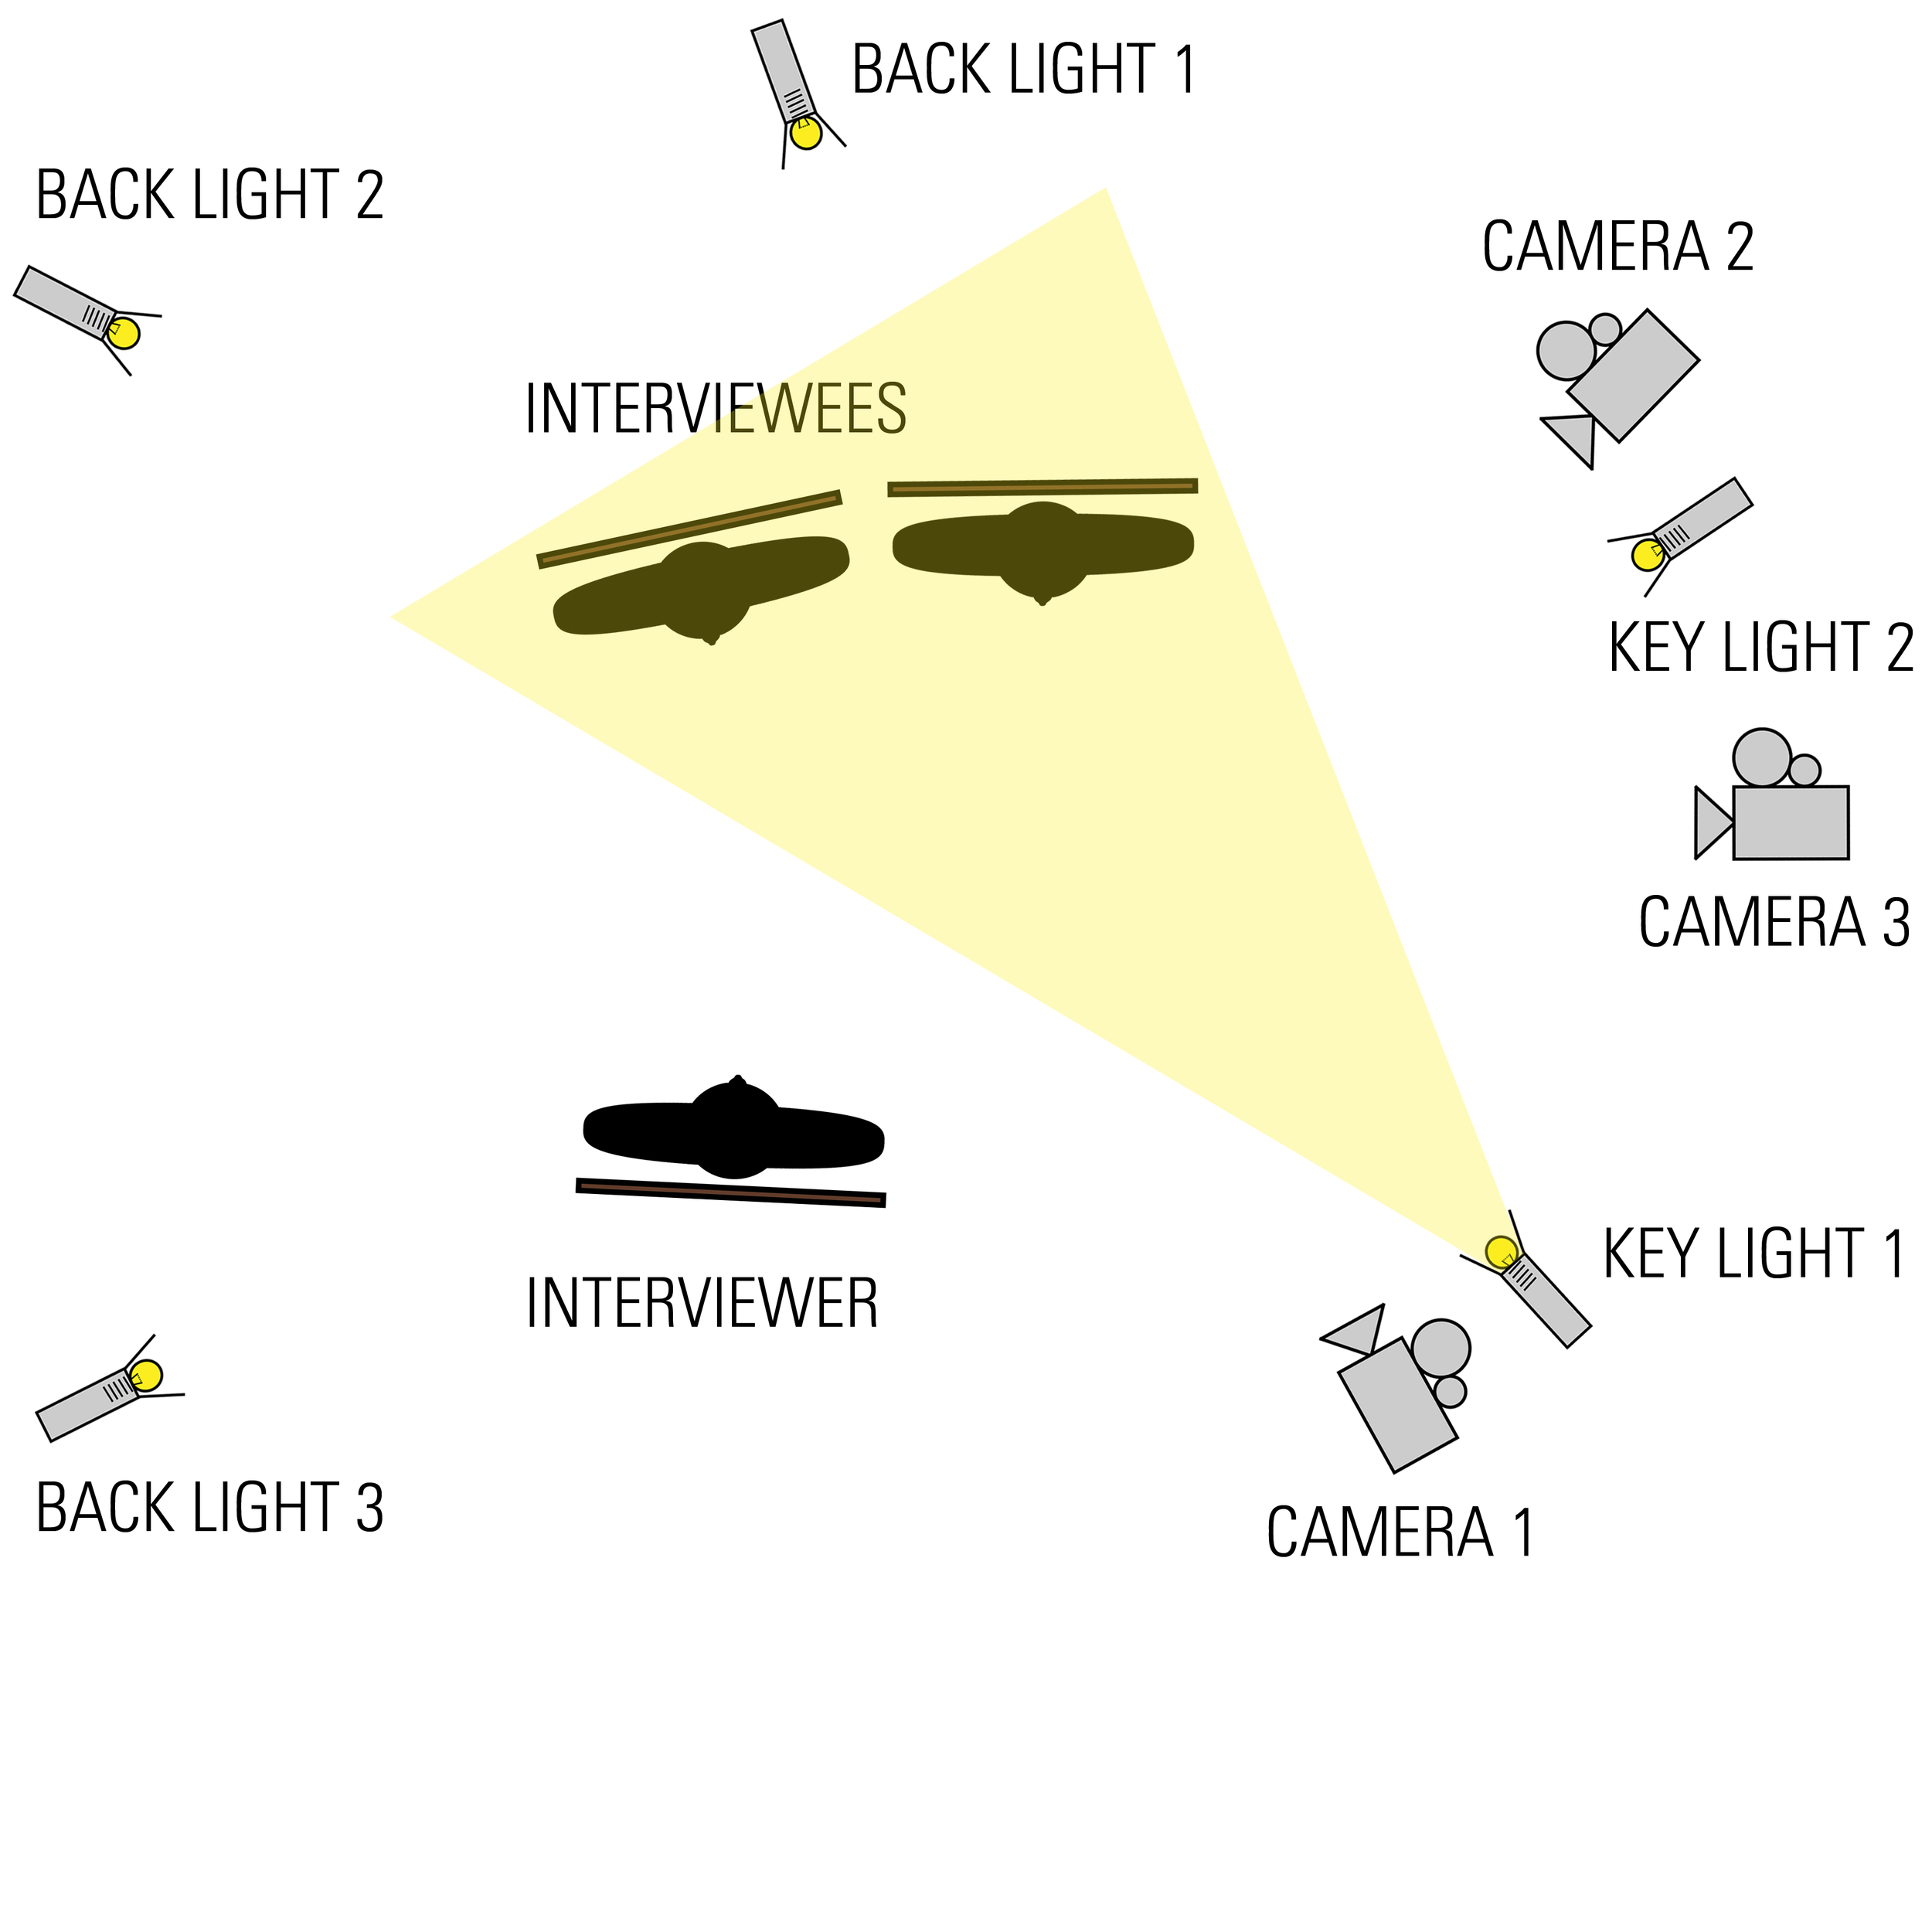 3CAMERA_1+2INTERVIEW_5LIGHTS_KEYLIGHT1_ON.png